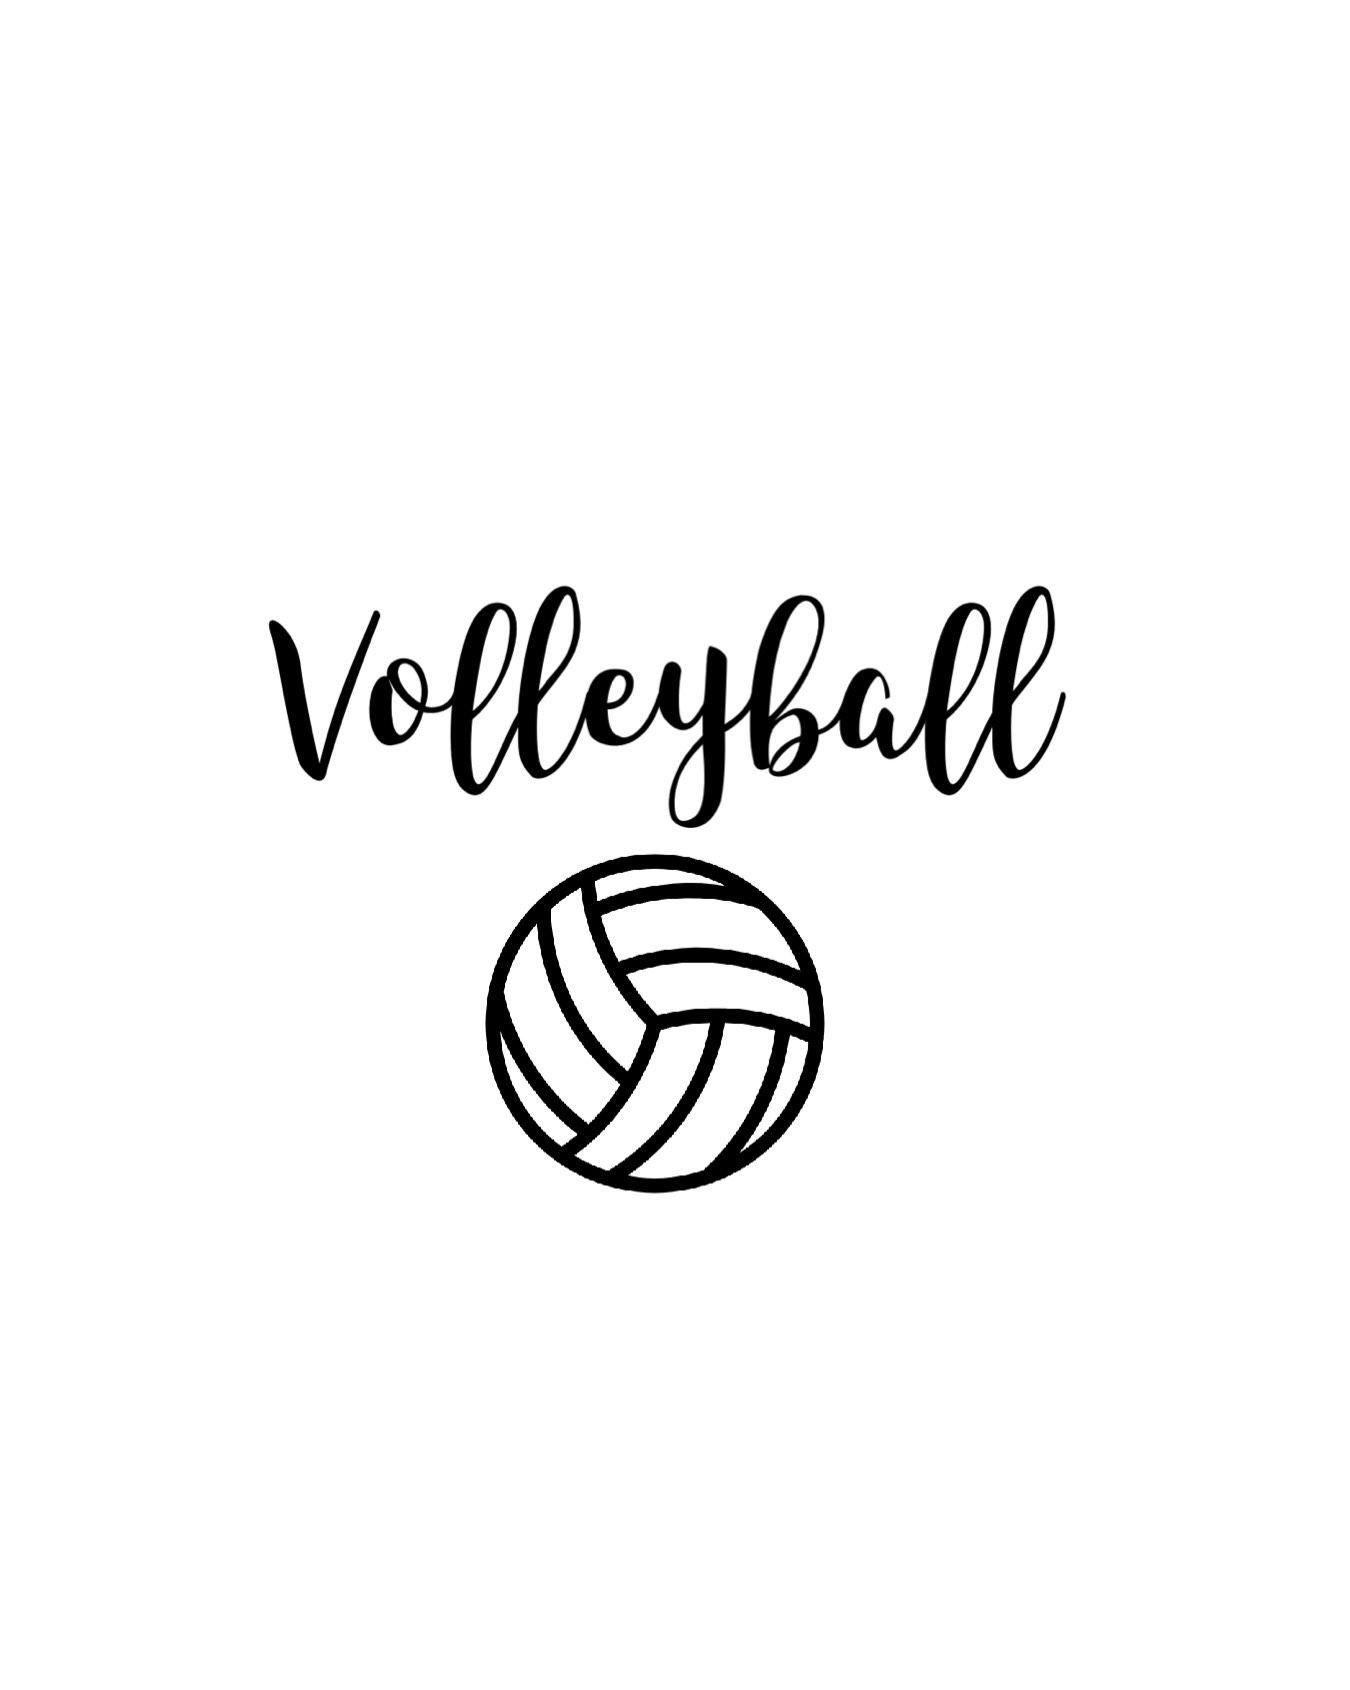 73 Wallpaper Motivation Wallpaper Volleyball Quotes Volleyball Wallpaper Volleyball Drawing Volleyball Players